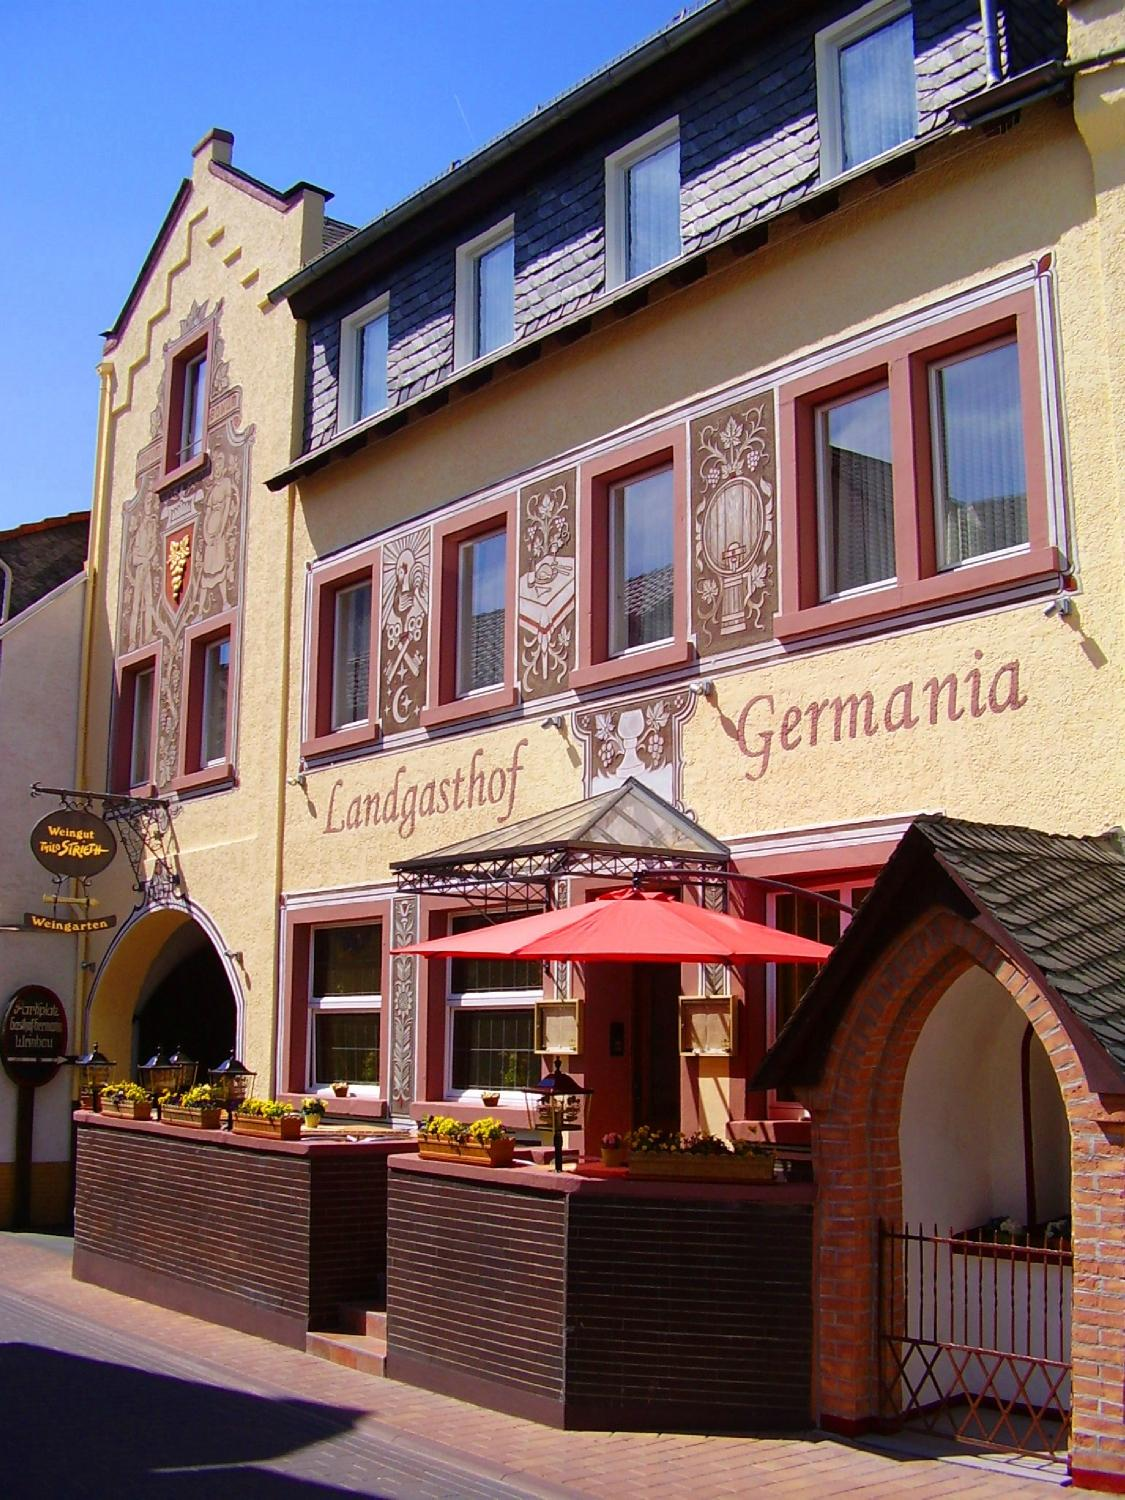 Landgasthof Germania